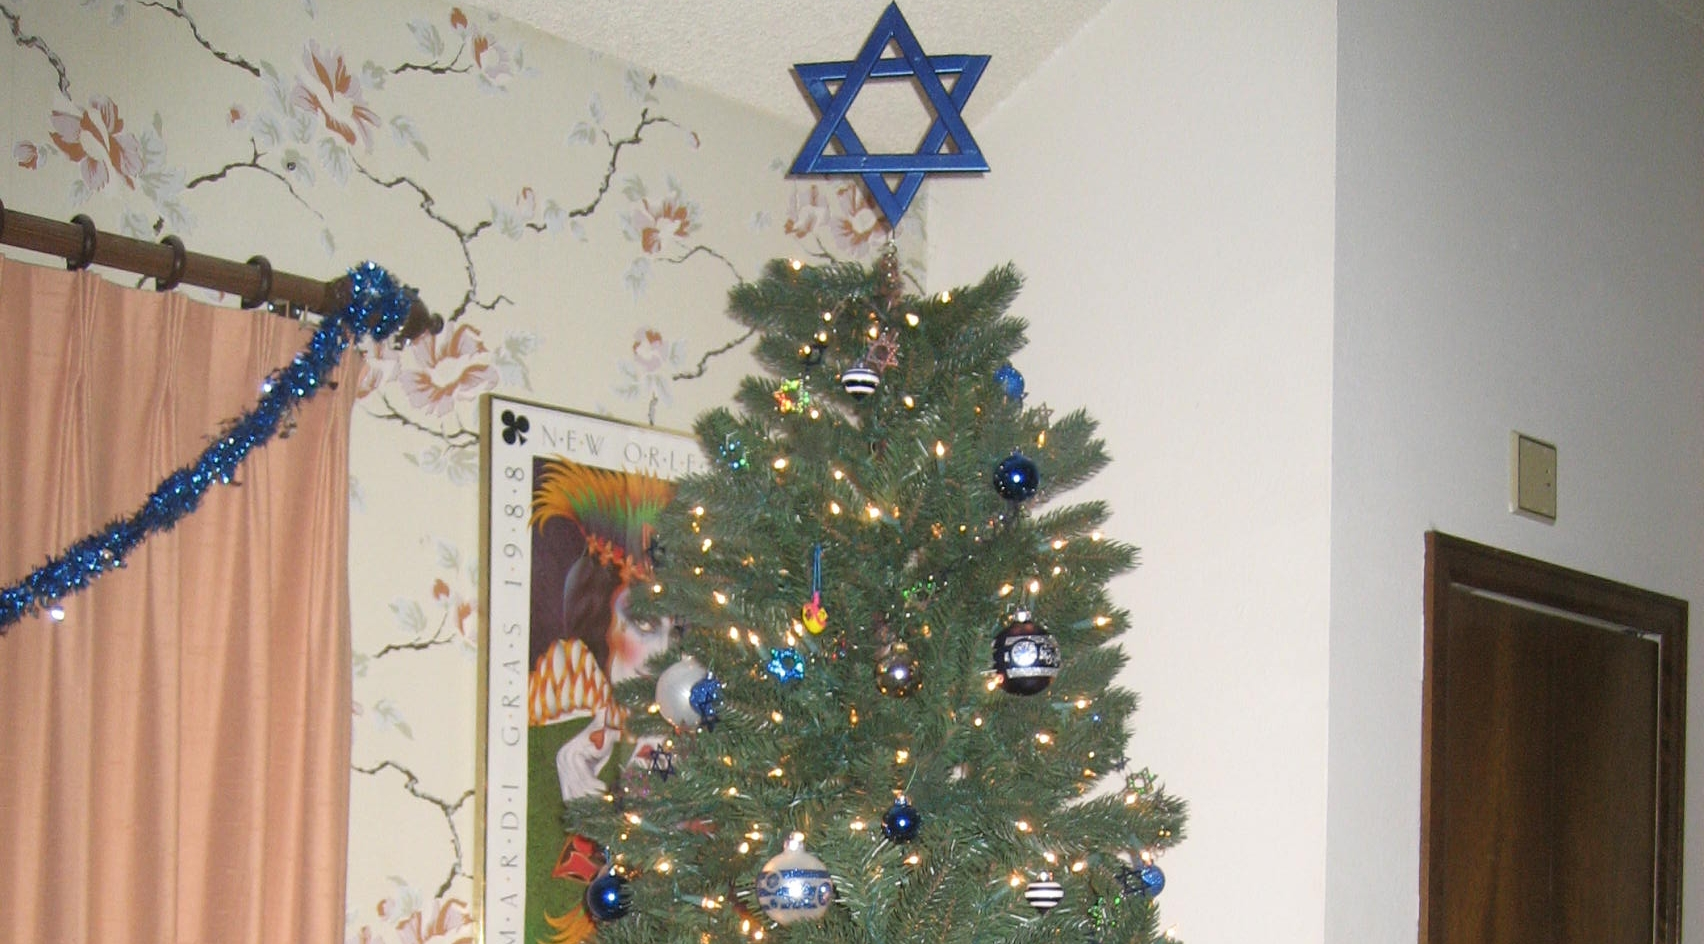 Jews Christmas Trees.Area Jews Celebrating Christmas Shocked Holiday Is About